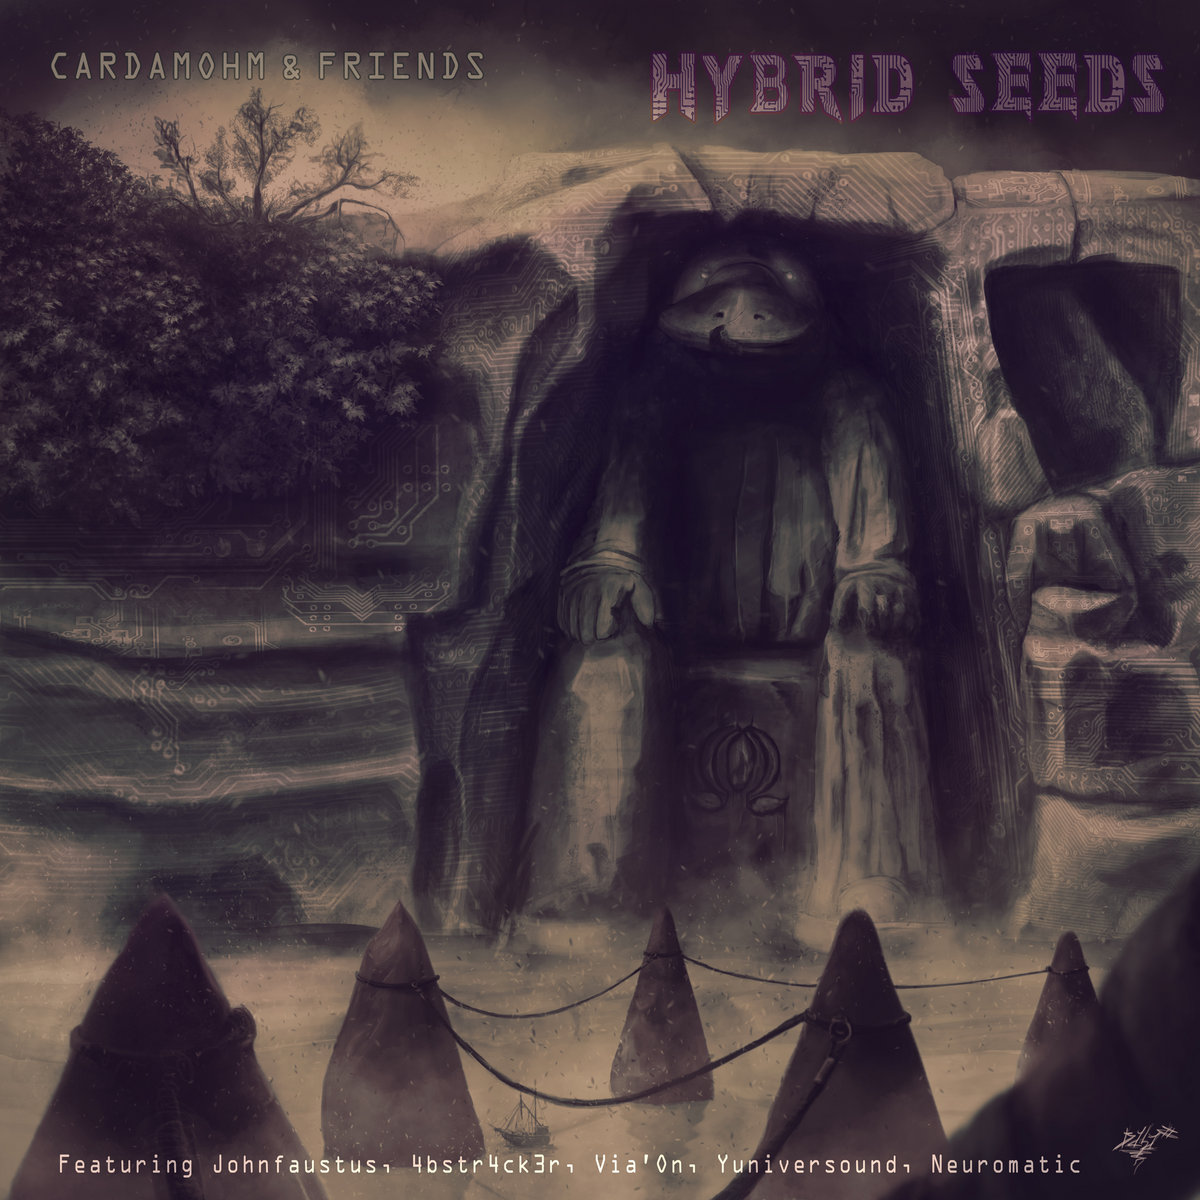 Cardamohm - Hybrid Seeds EP, artwork by BaBa Shikoine